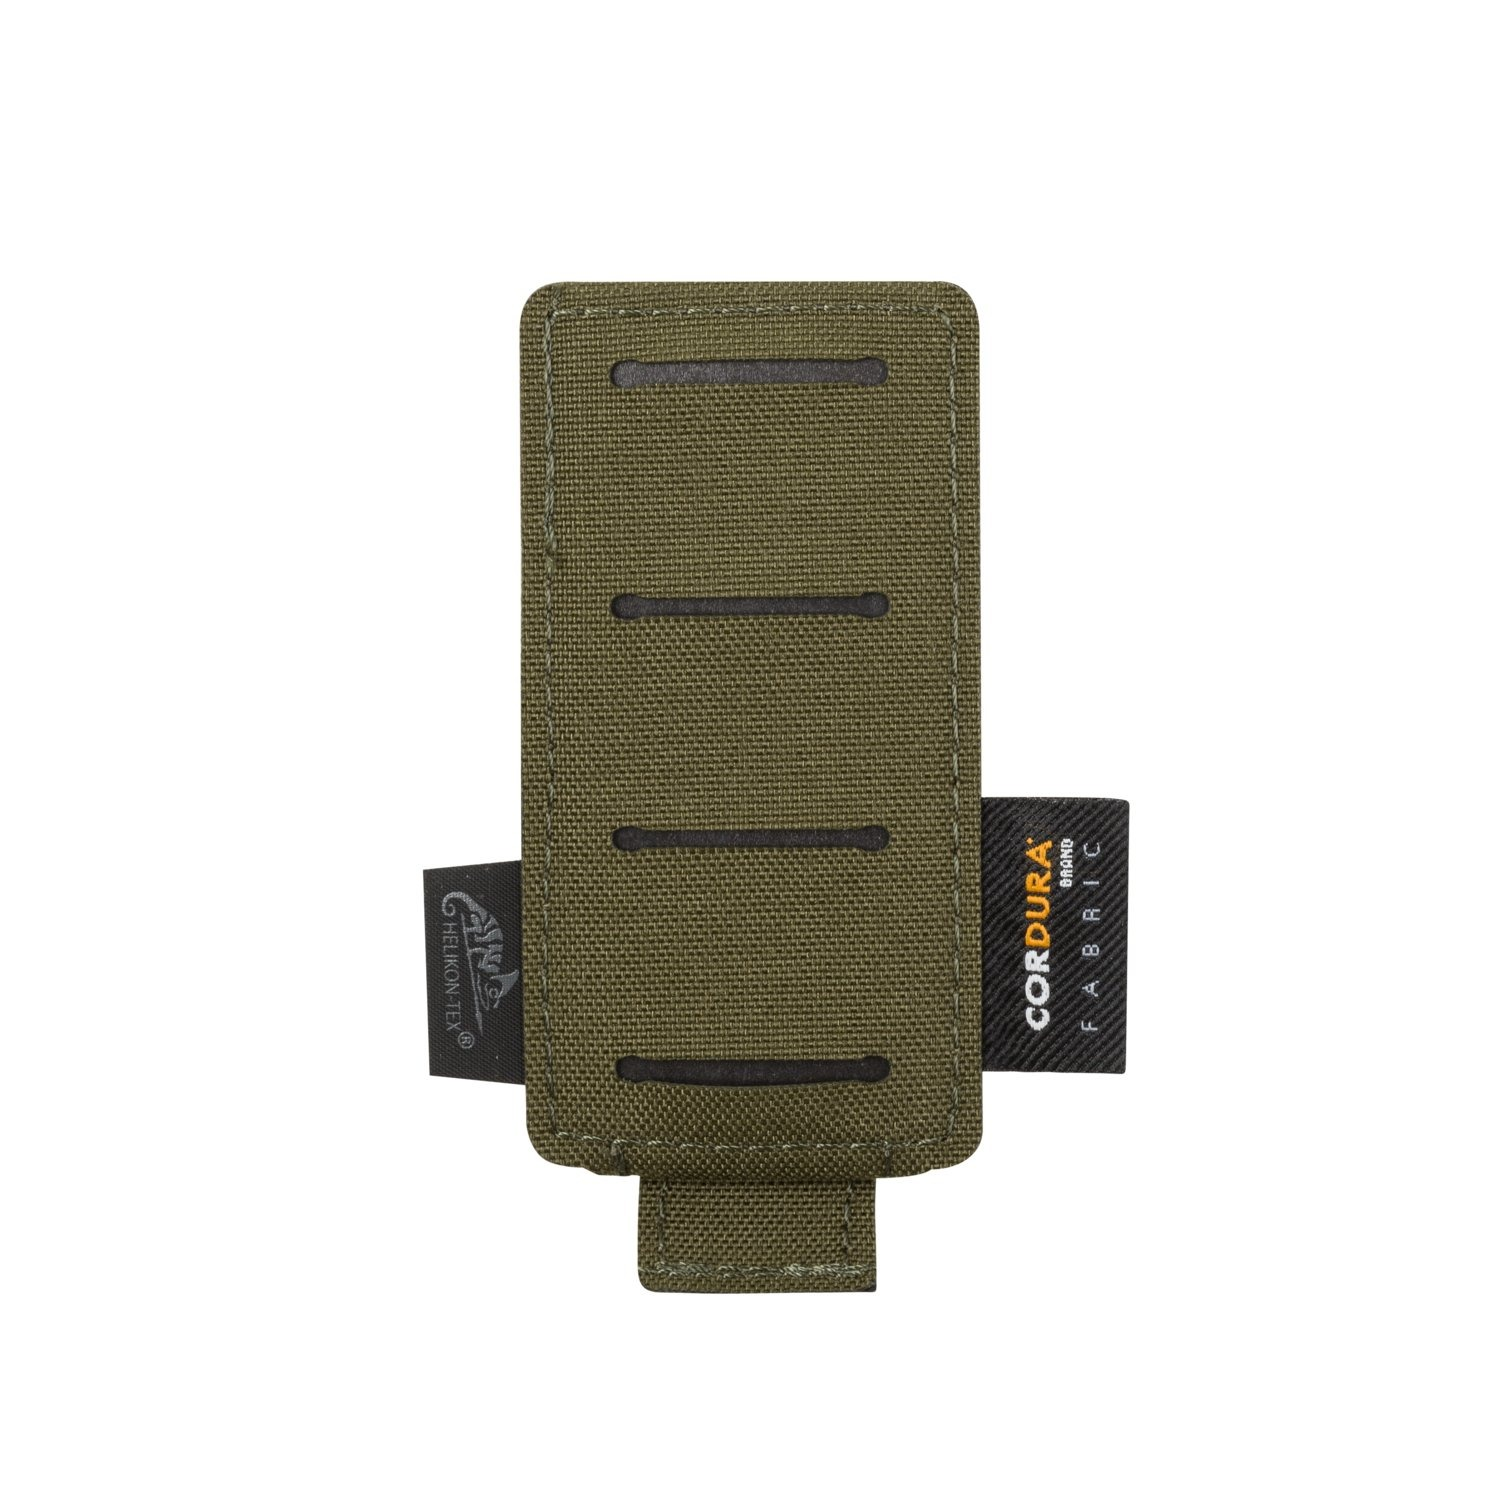 Image of Adapter bma helikon belt molle adapter 1 - cordura - olive green - one size (in-bm1-cd-02)